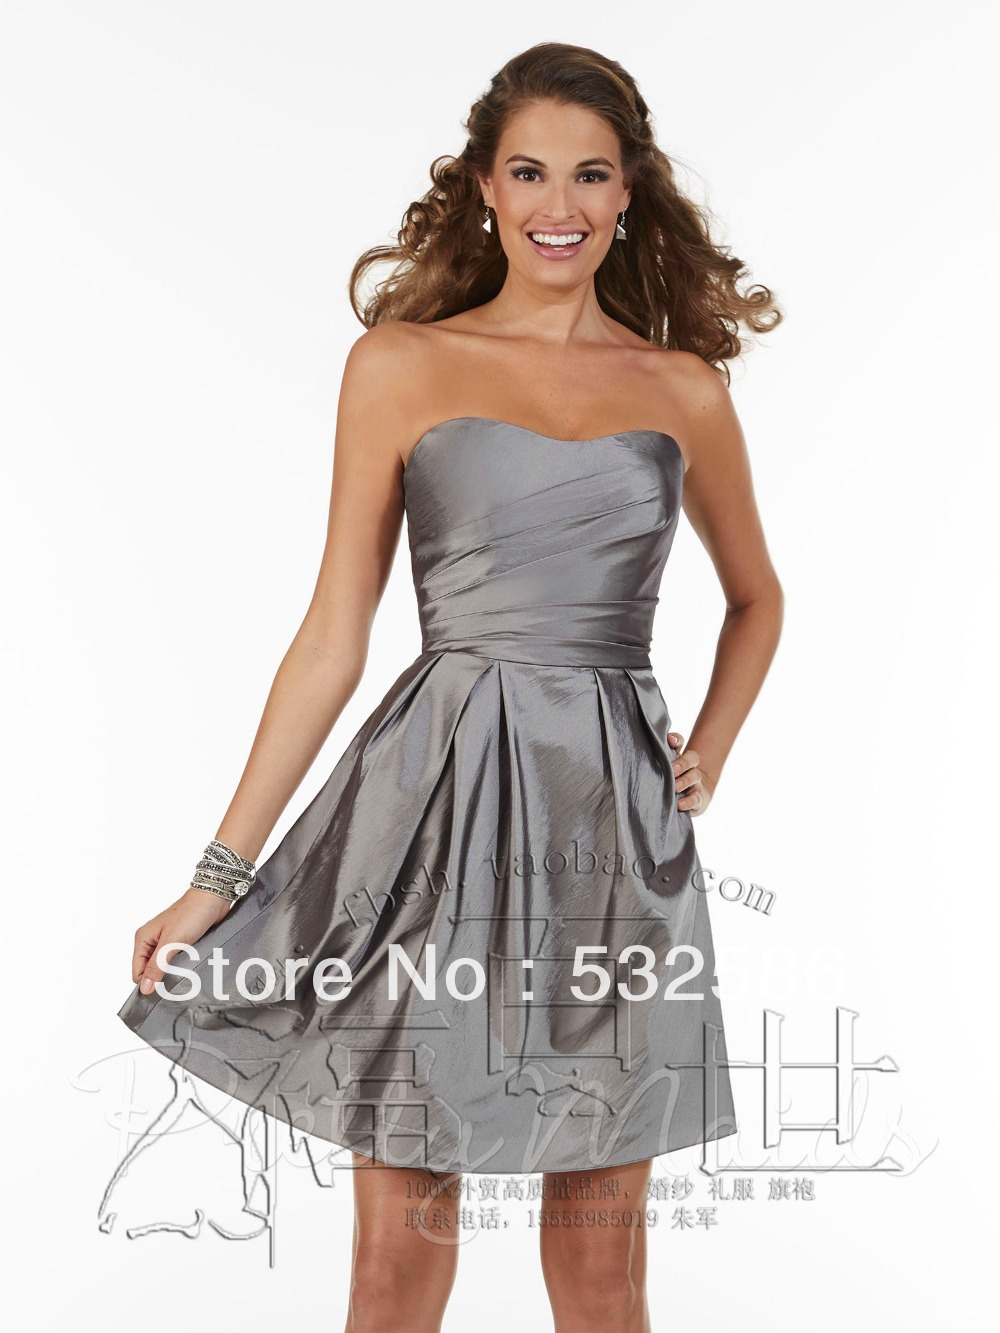 Mint bridesmaid dress short strapless dress with side gathered mint bridesmaid dress short strapless dress with side gathered bodice and box pleated in bridesmaid dresses from weddings events on aliexpress ombrellifo Choice Image